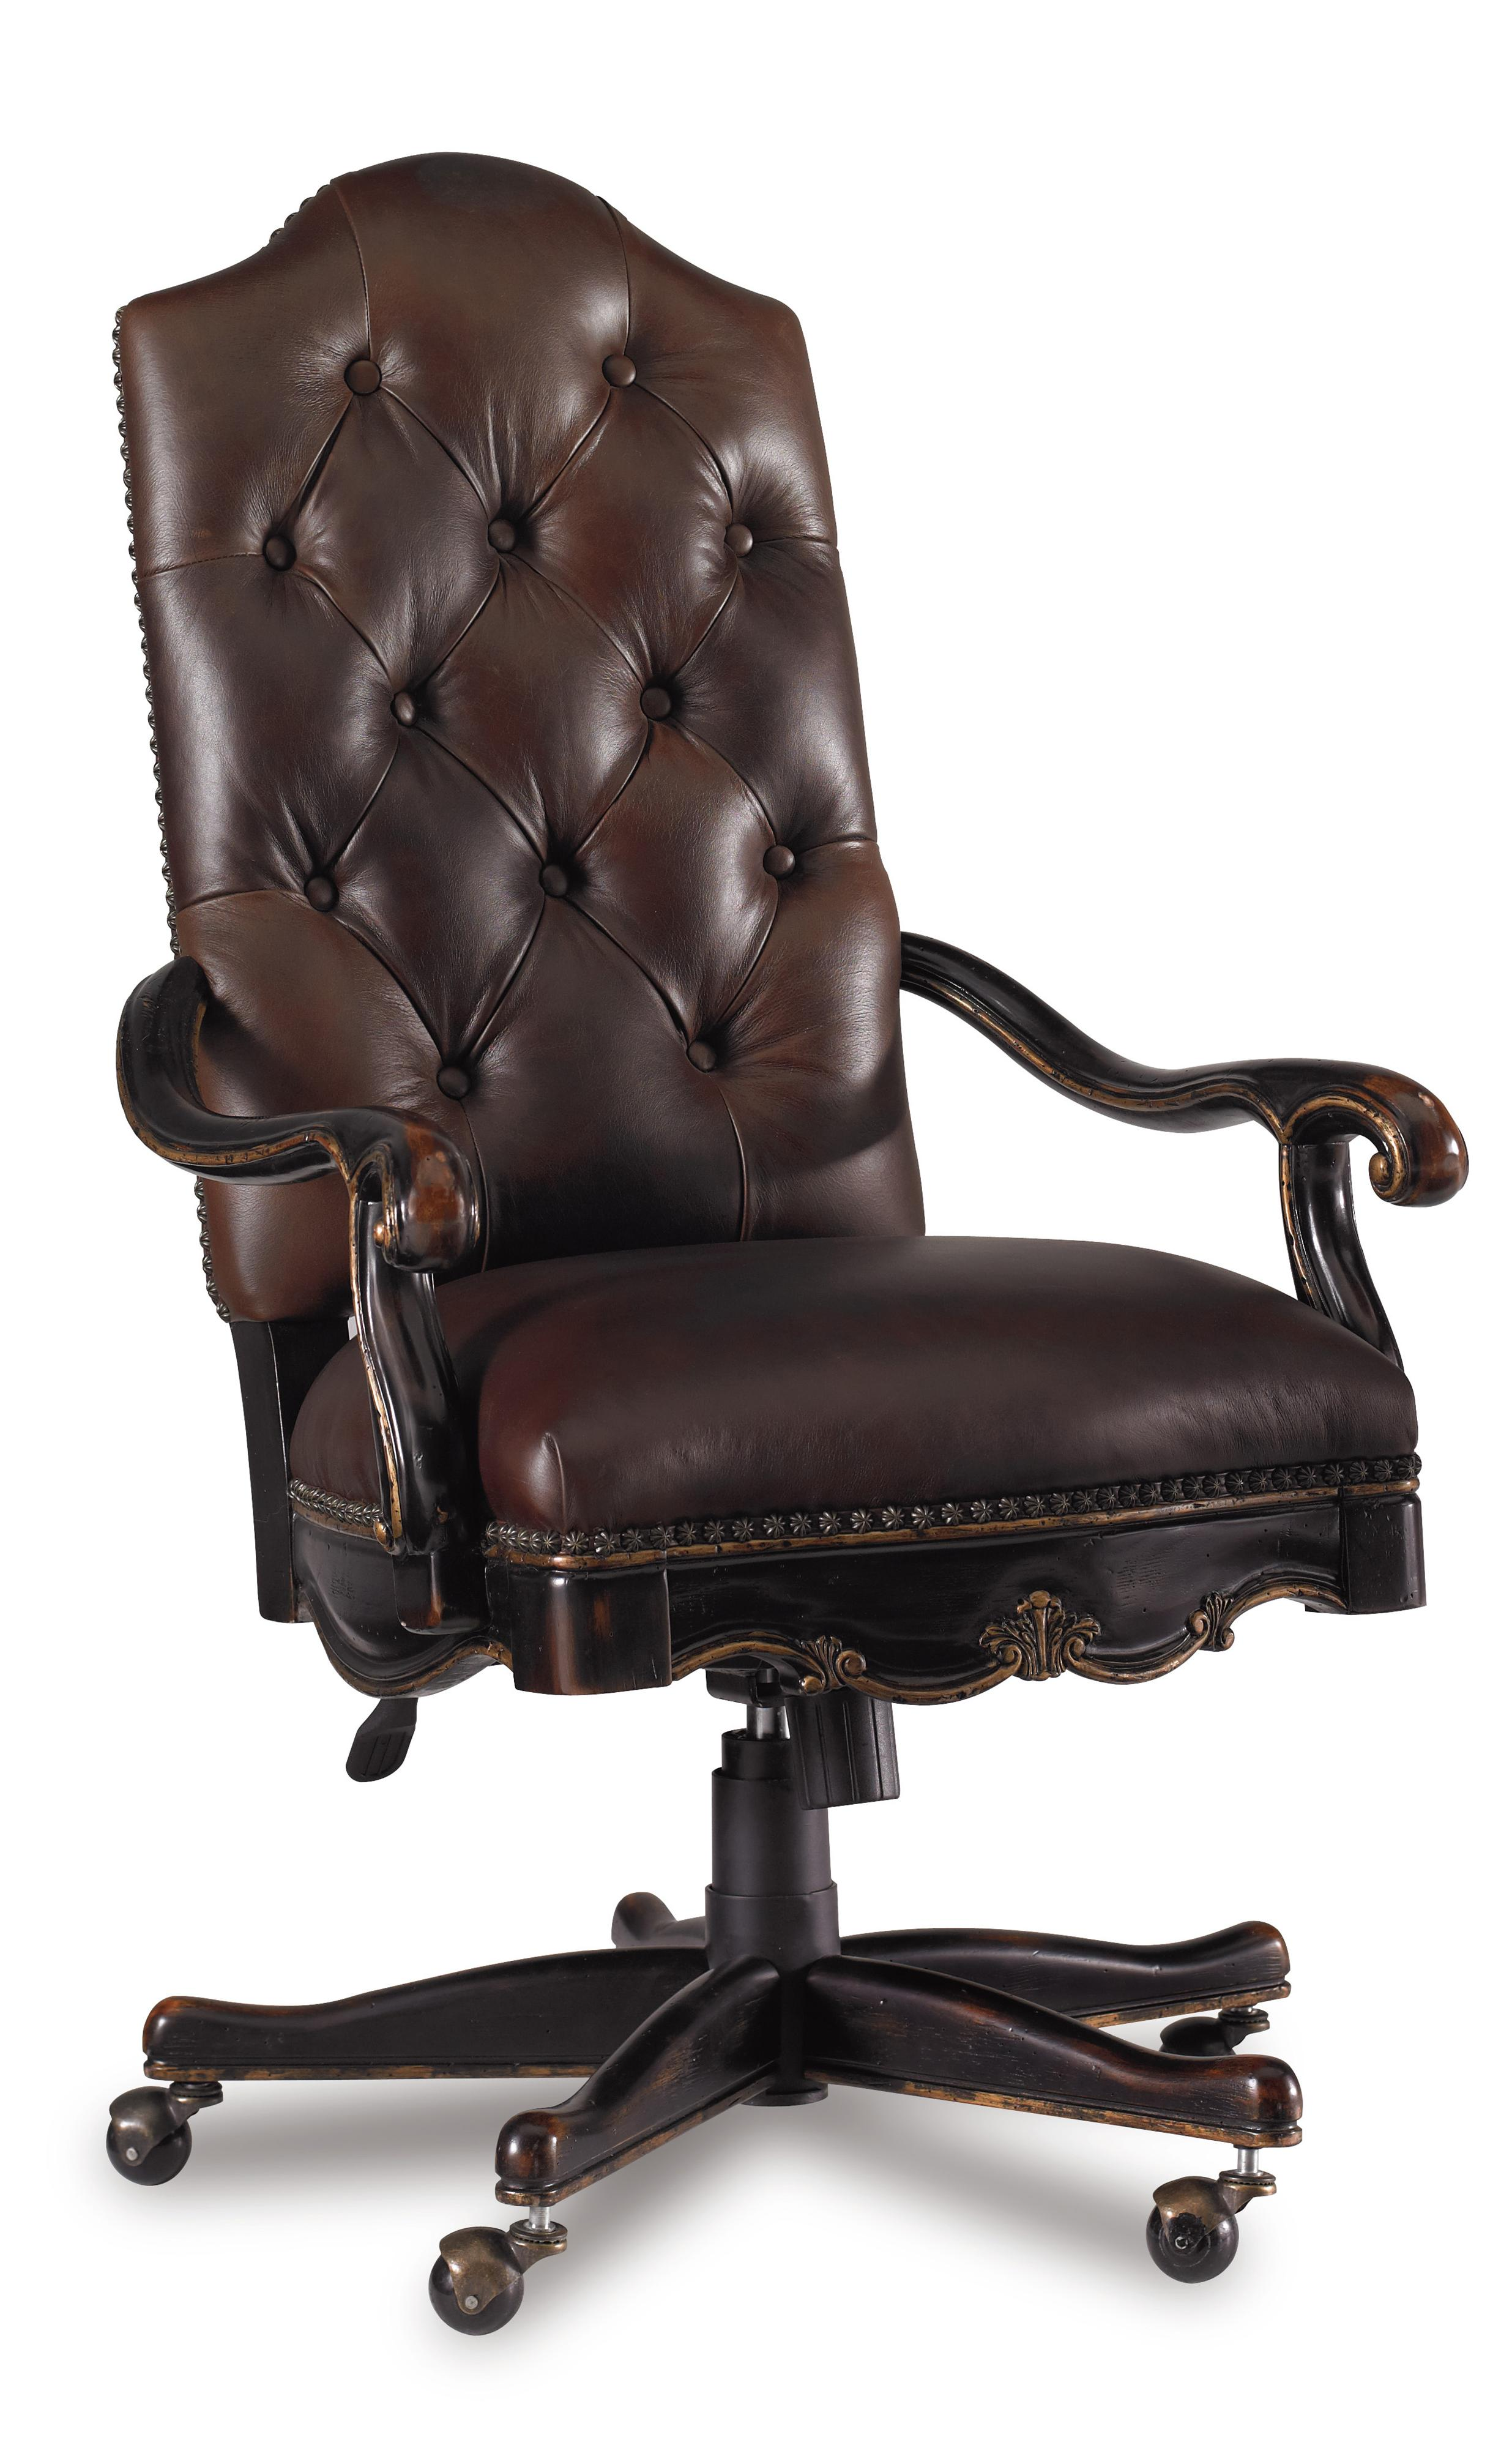 Hooker Furniture Grandover Tufted Leather Executive Office Chair with Tilt,  Swivel and Pneumatic Seat Height Adjustment